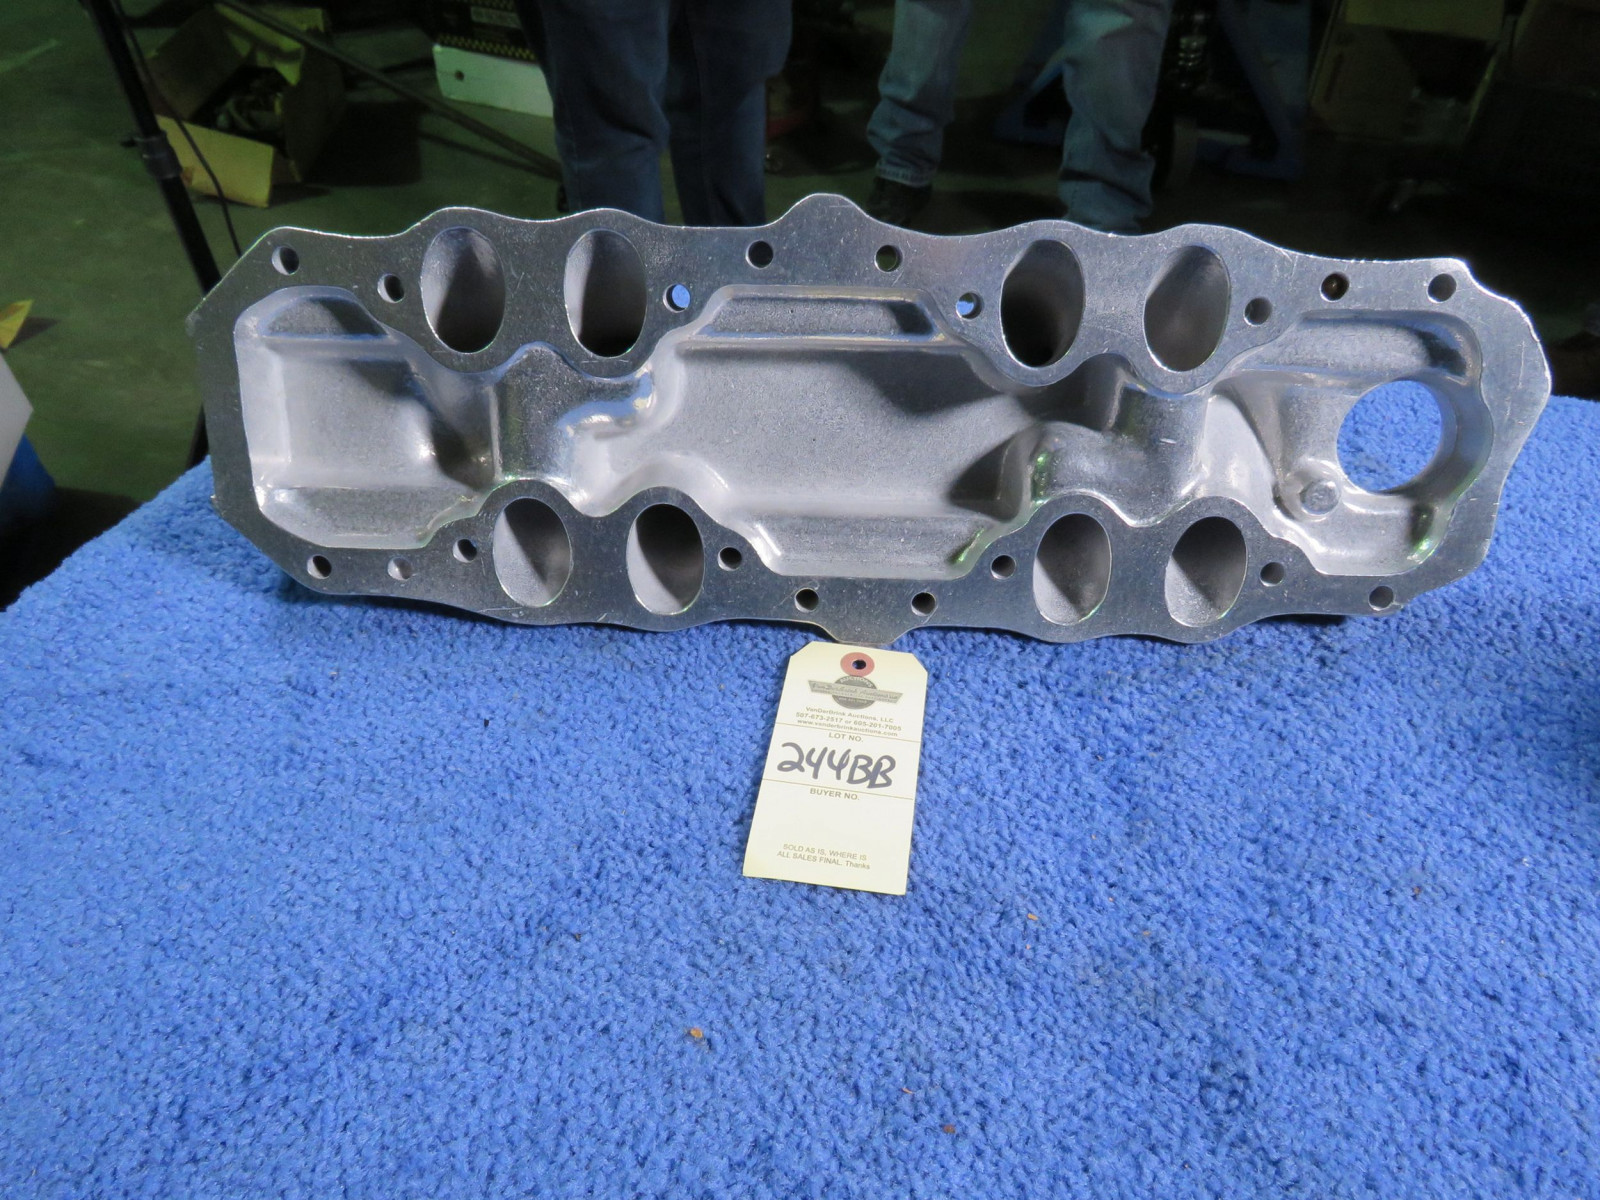 Aftermarket Edelbrock Intake with Tri-power Jet Coated FH V8 - Image 2